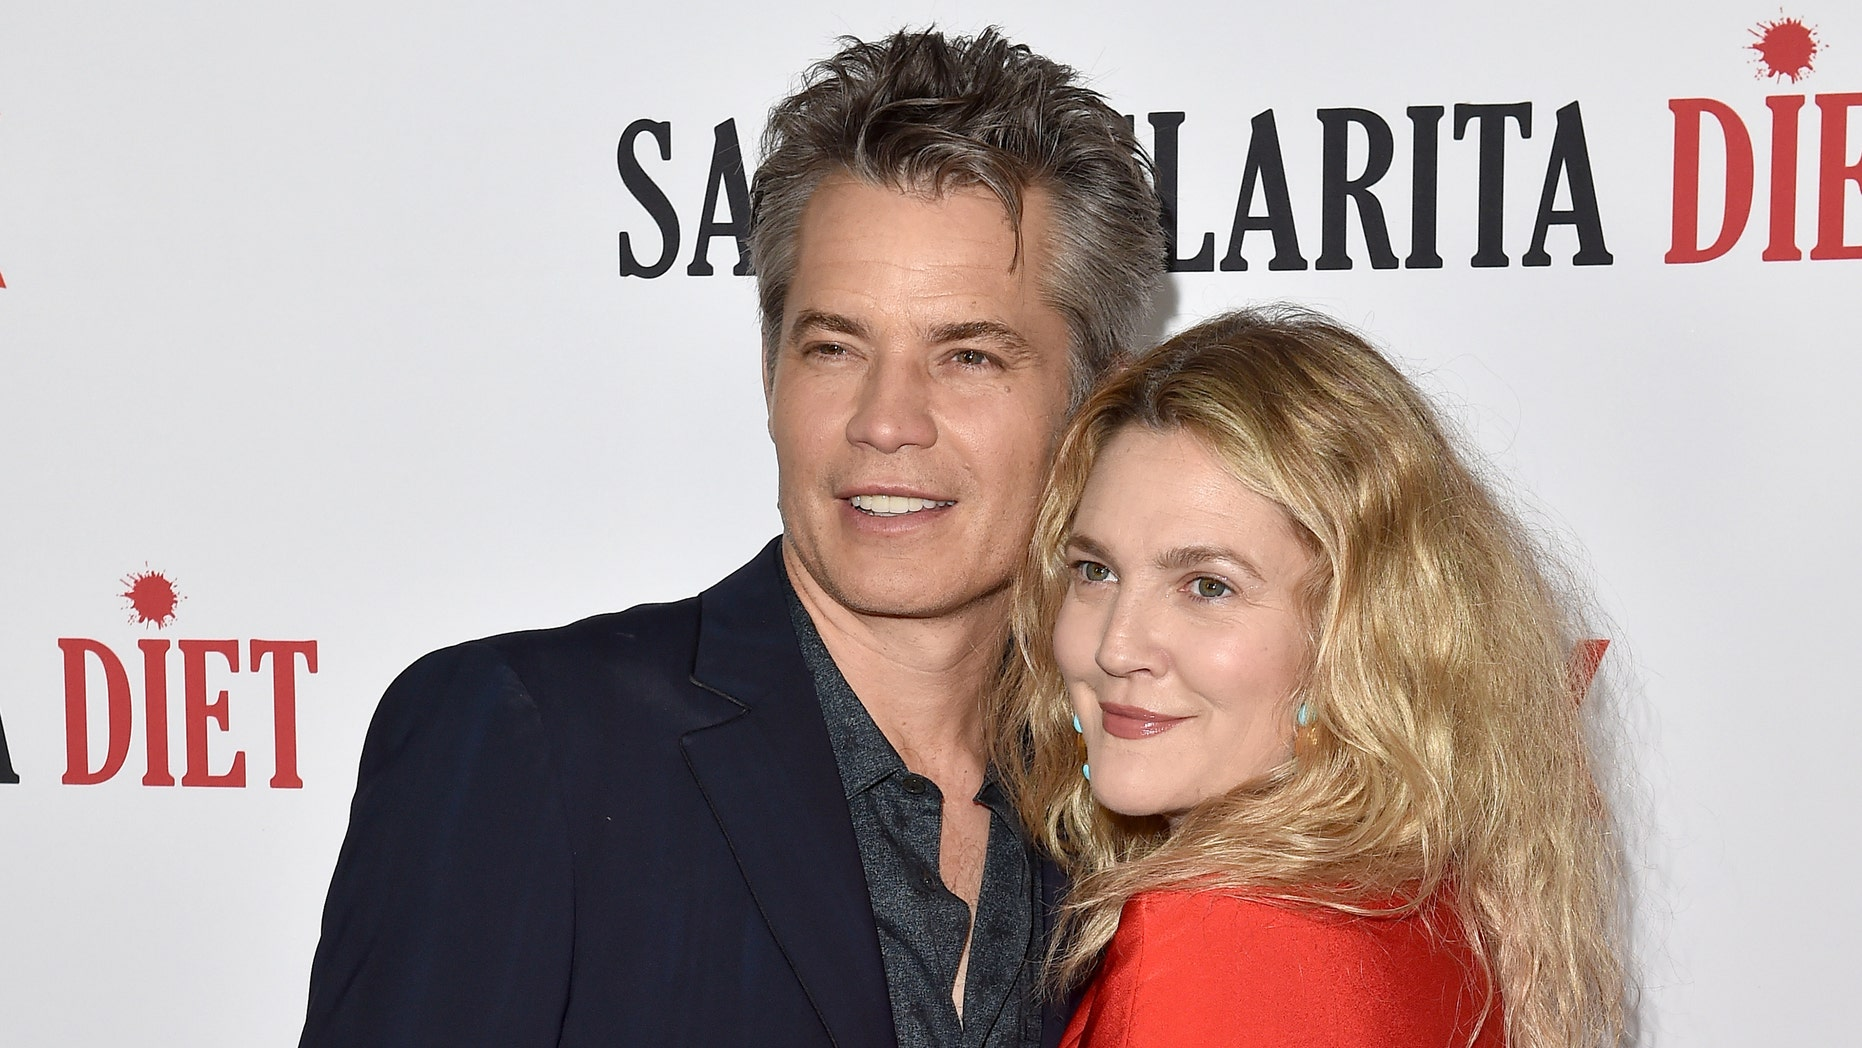 The actors Timothy Olyphant and Drew Barrymore attend the premiere of Netflix & # 39; s Santa Clarita Diet & # 39; Season 2 part.